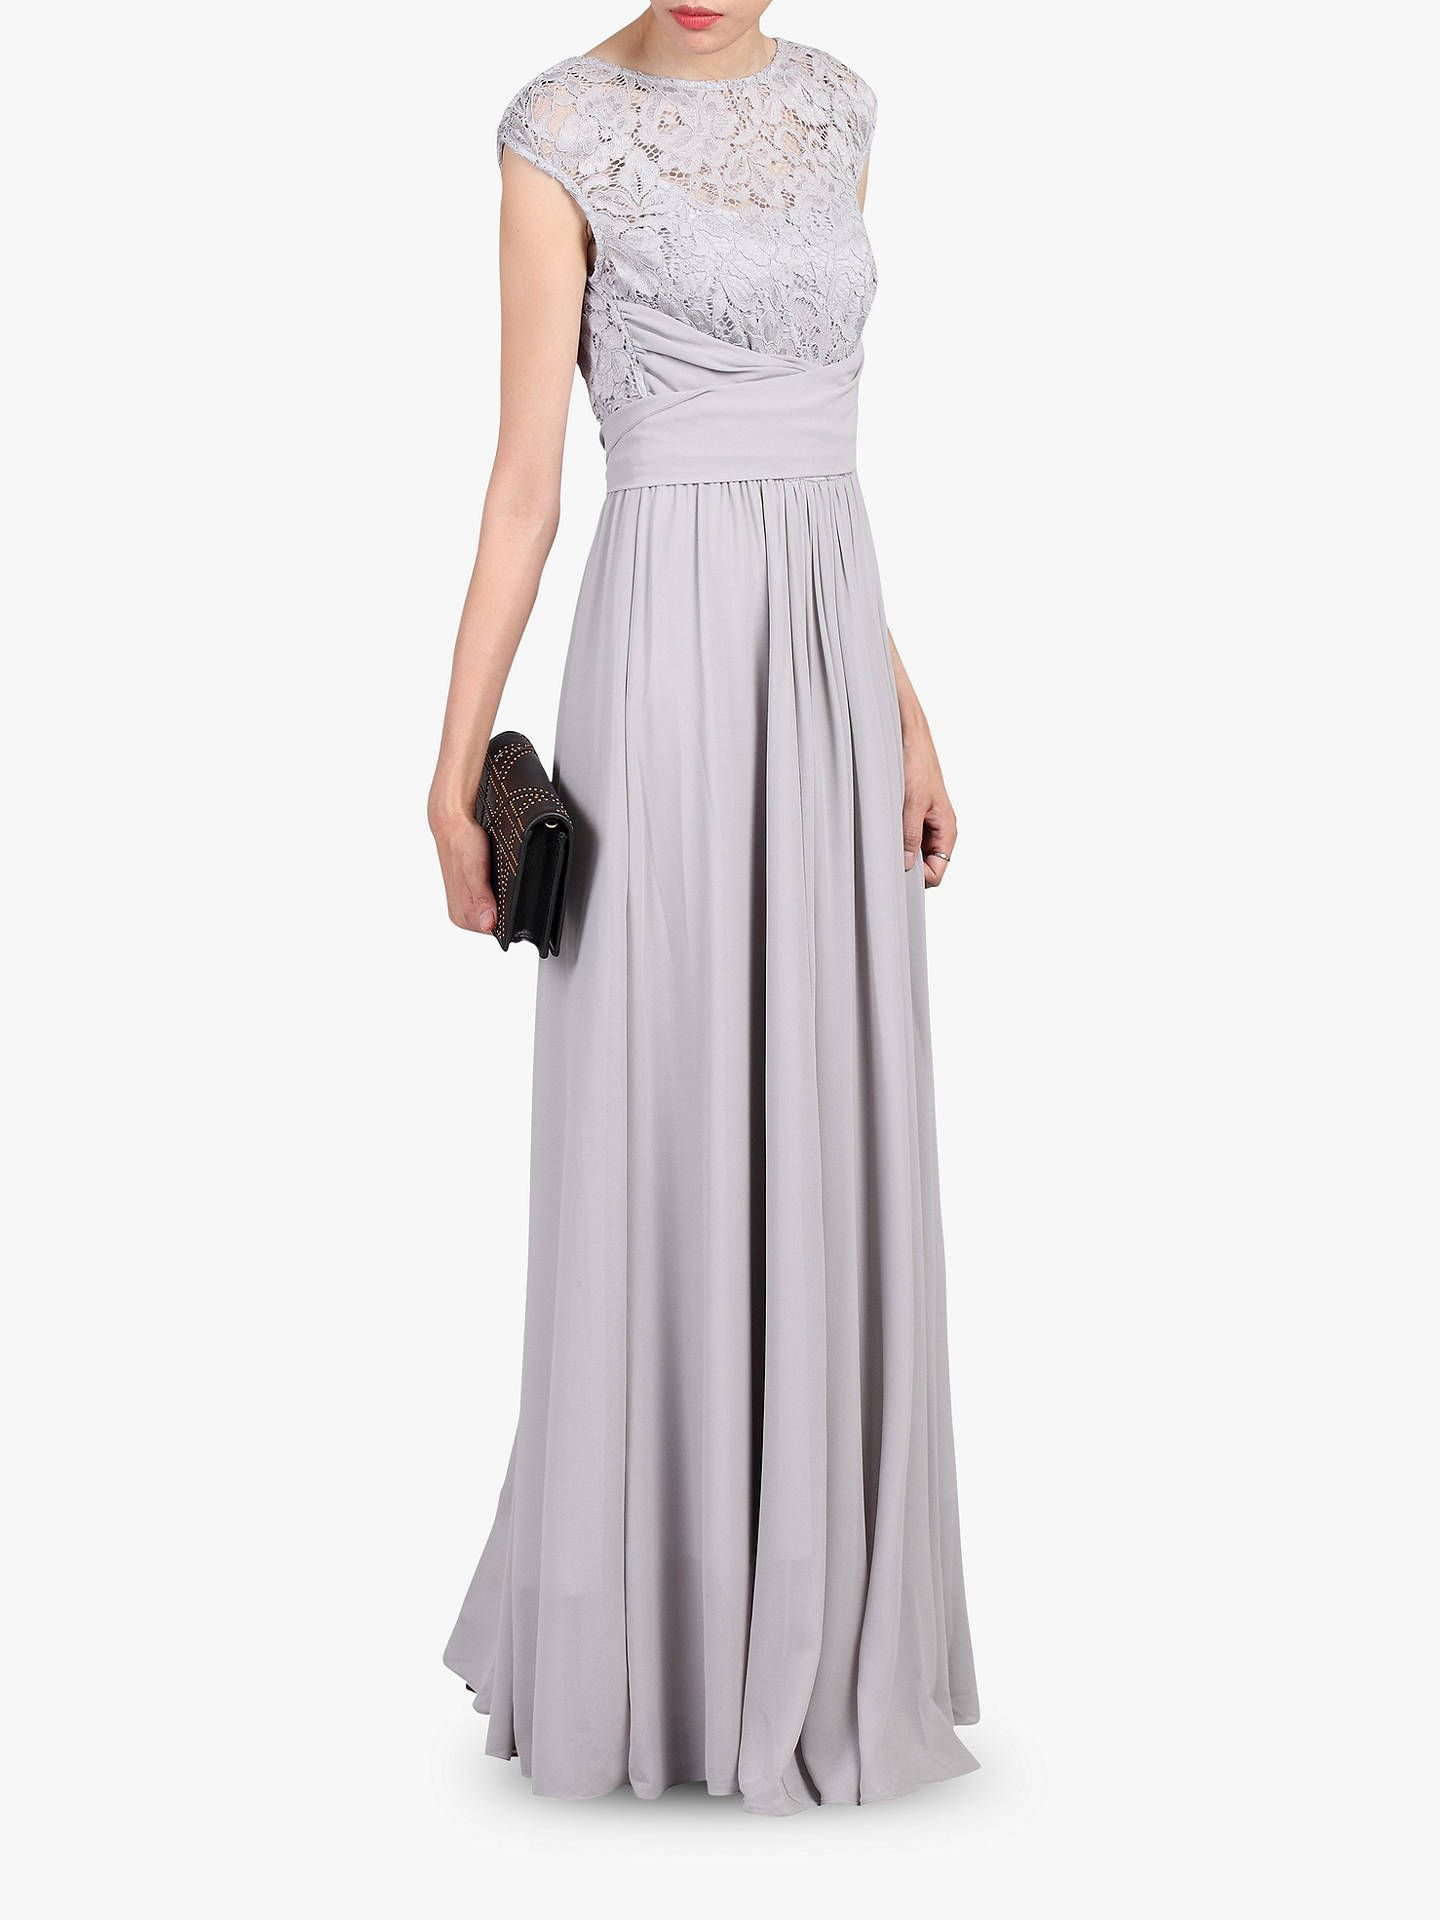 c8b21e5a94ce BuyJolie Moi Lace Bodice Pleated Maxi Dress, Silver Grey, 8 Online at  johnlewis.com